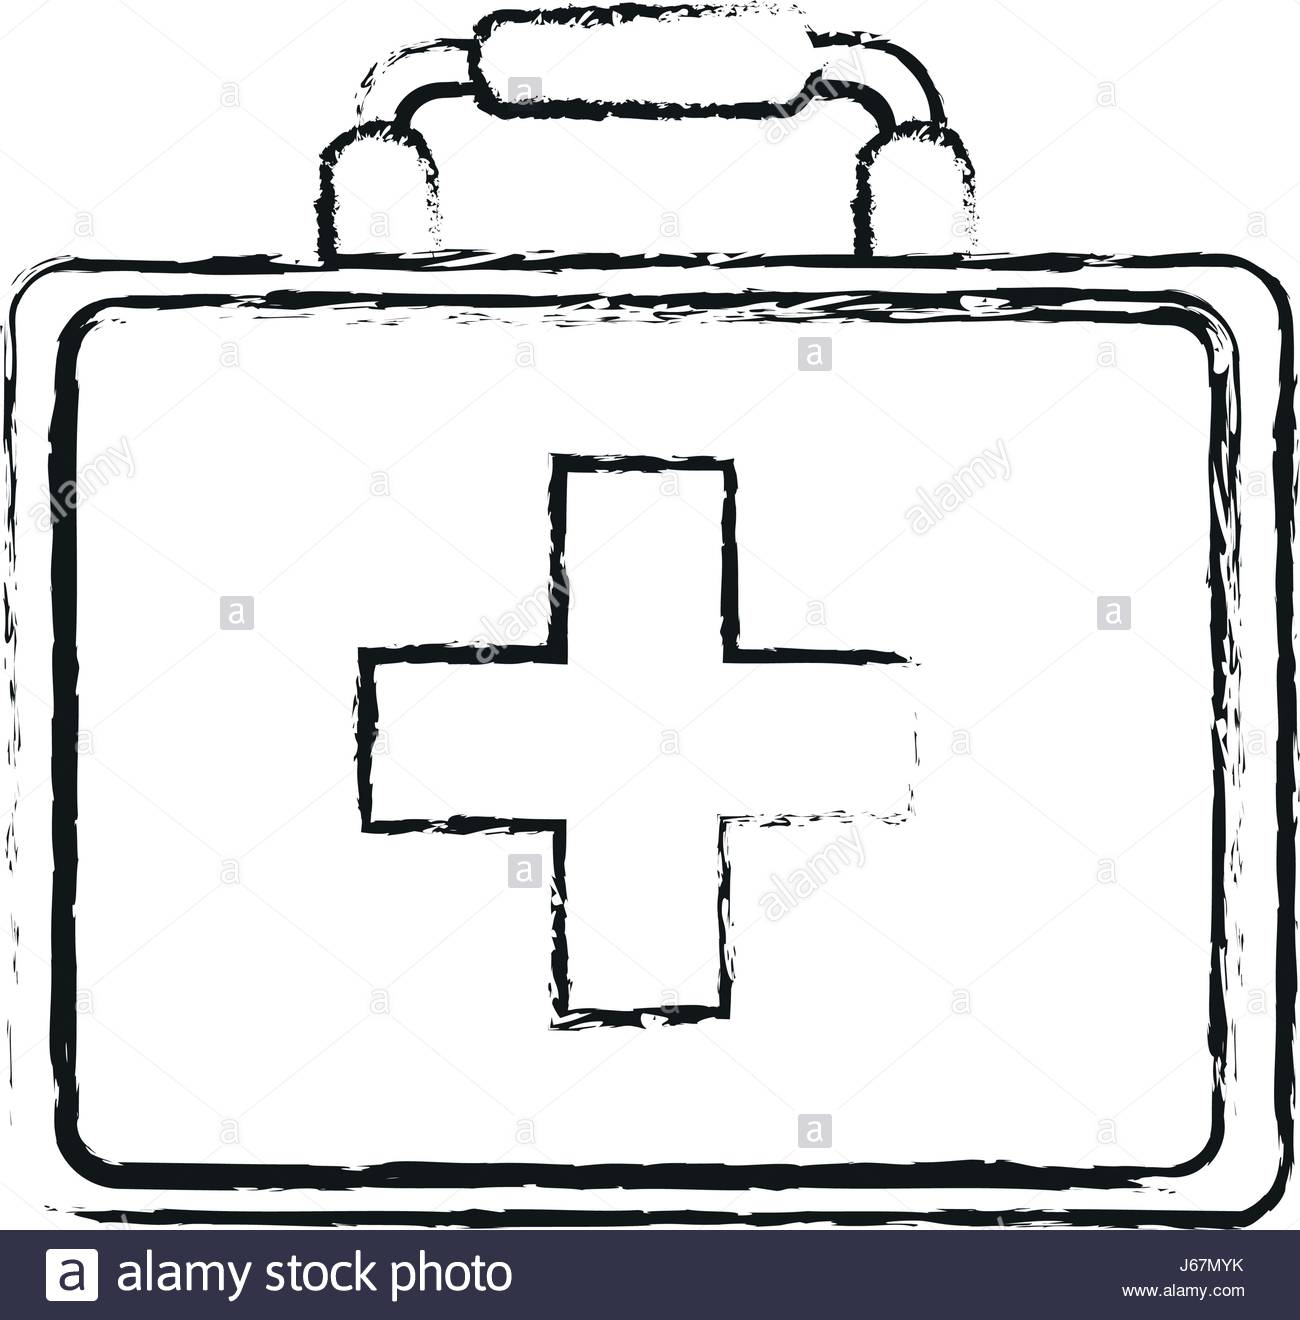 1300x1320 Blurred Silhouette Image Cartoon First Aid Kit With Symbol Cross